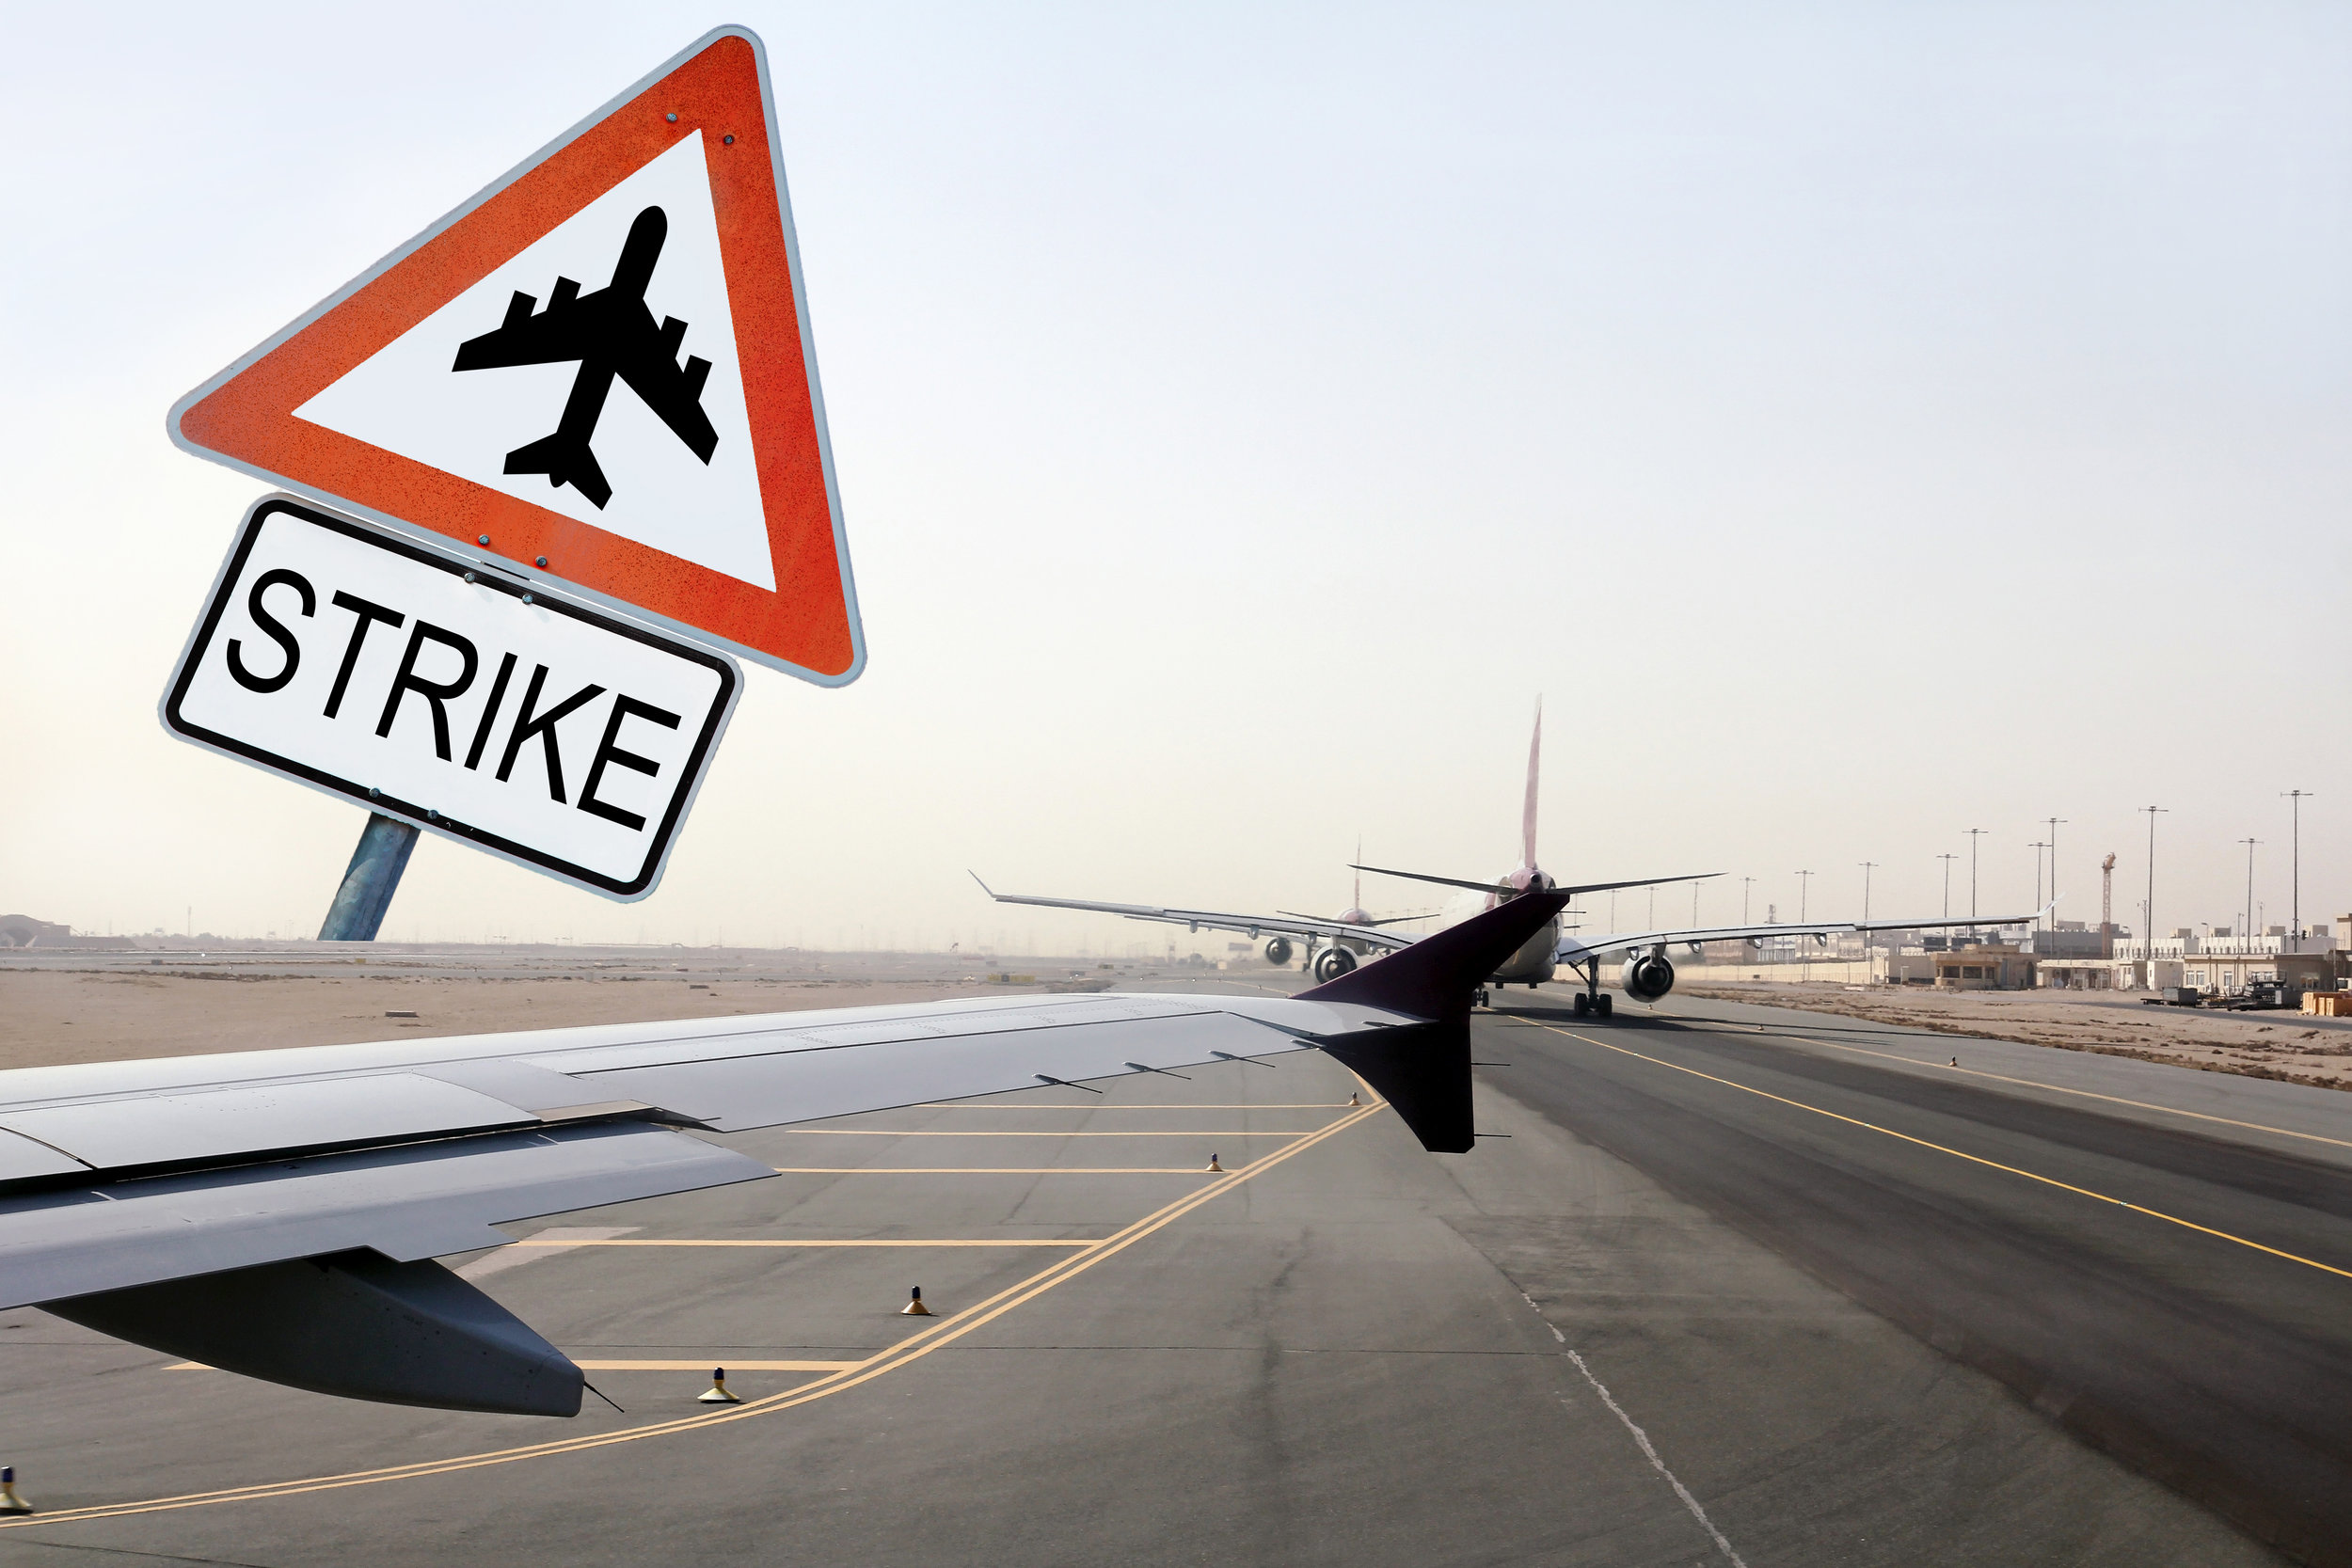 Airport_strike.jpg